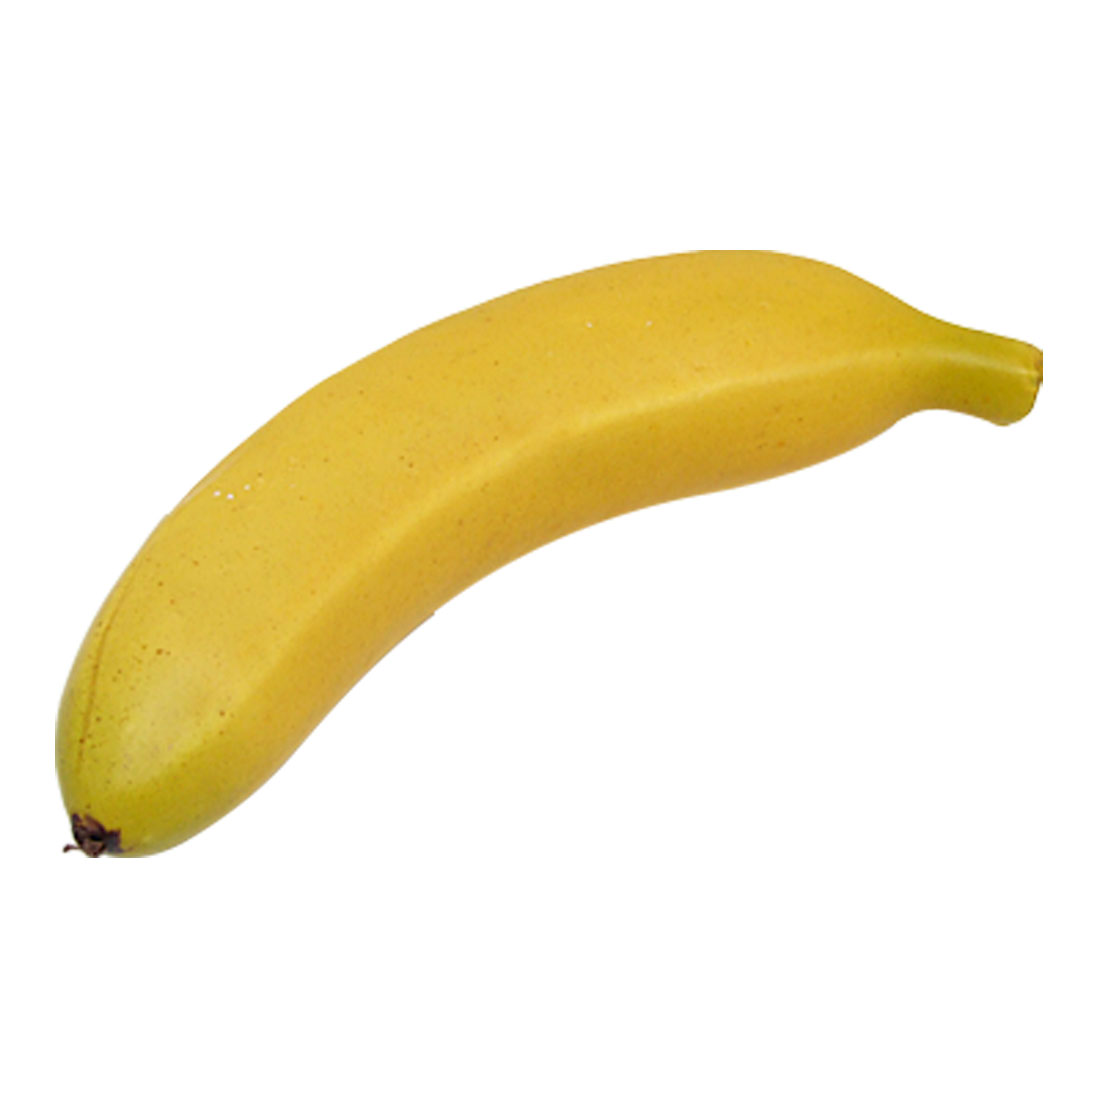 Art Craft Plastic Foam Banana Fruit Household Decoration